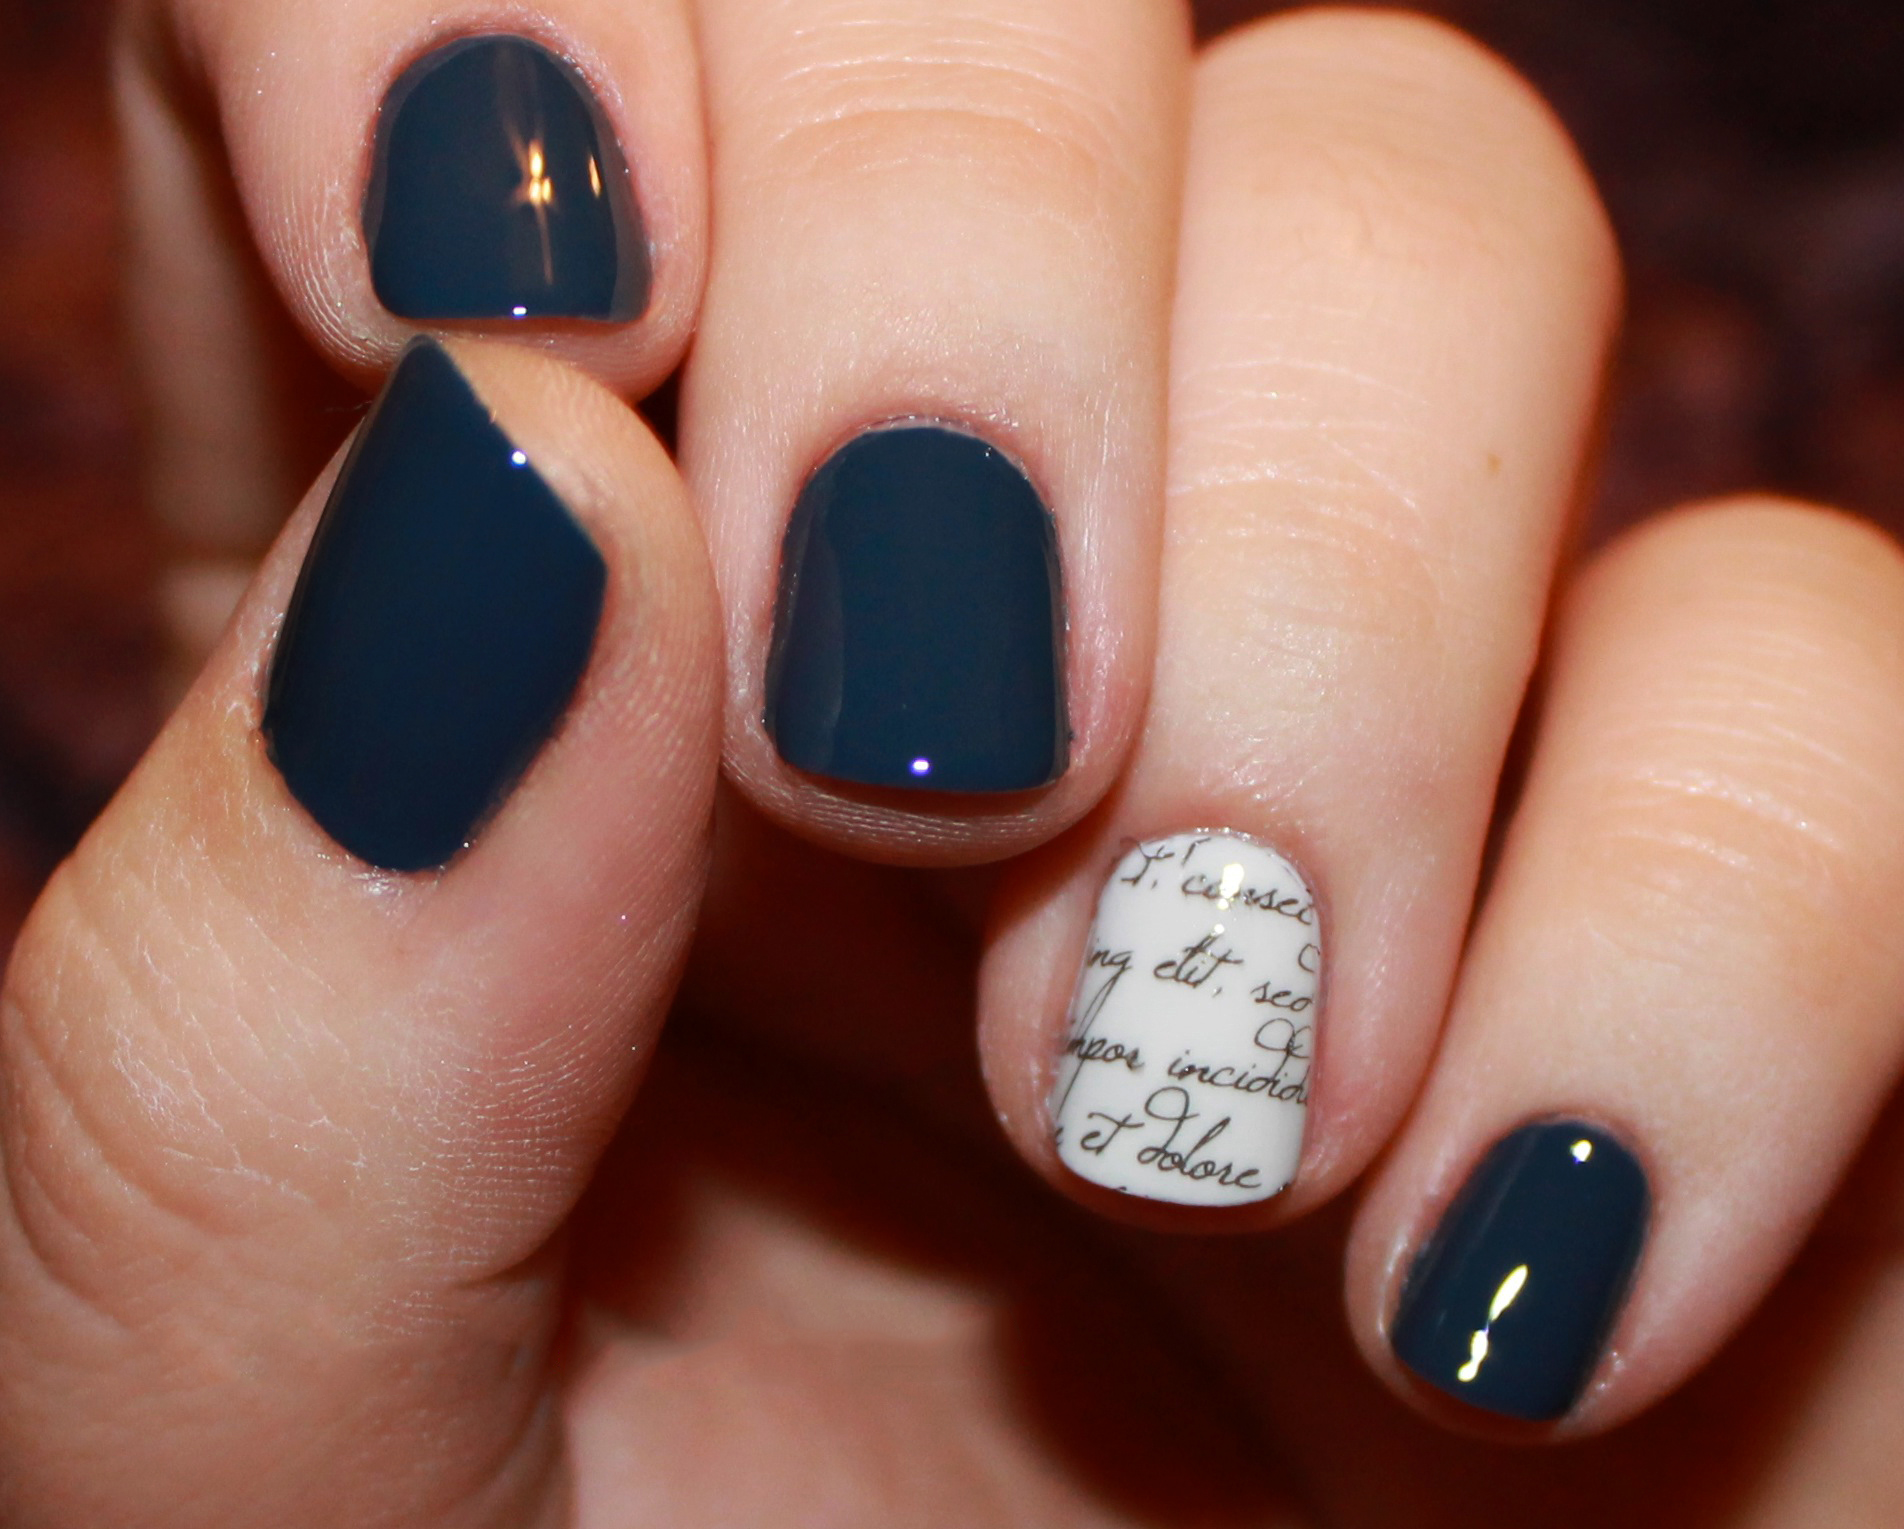 Painting One Nail A Different Color